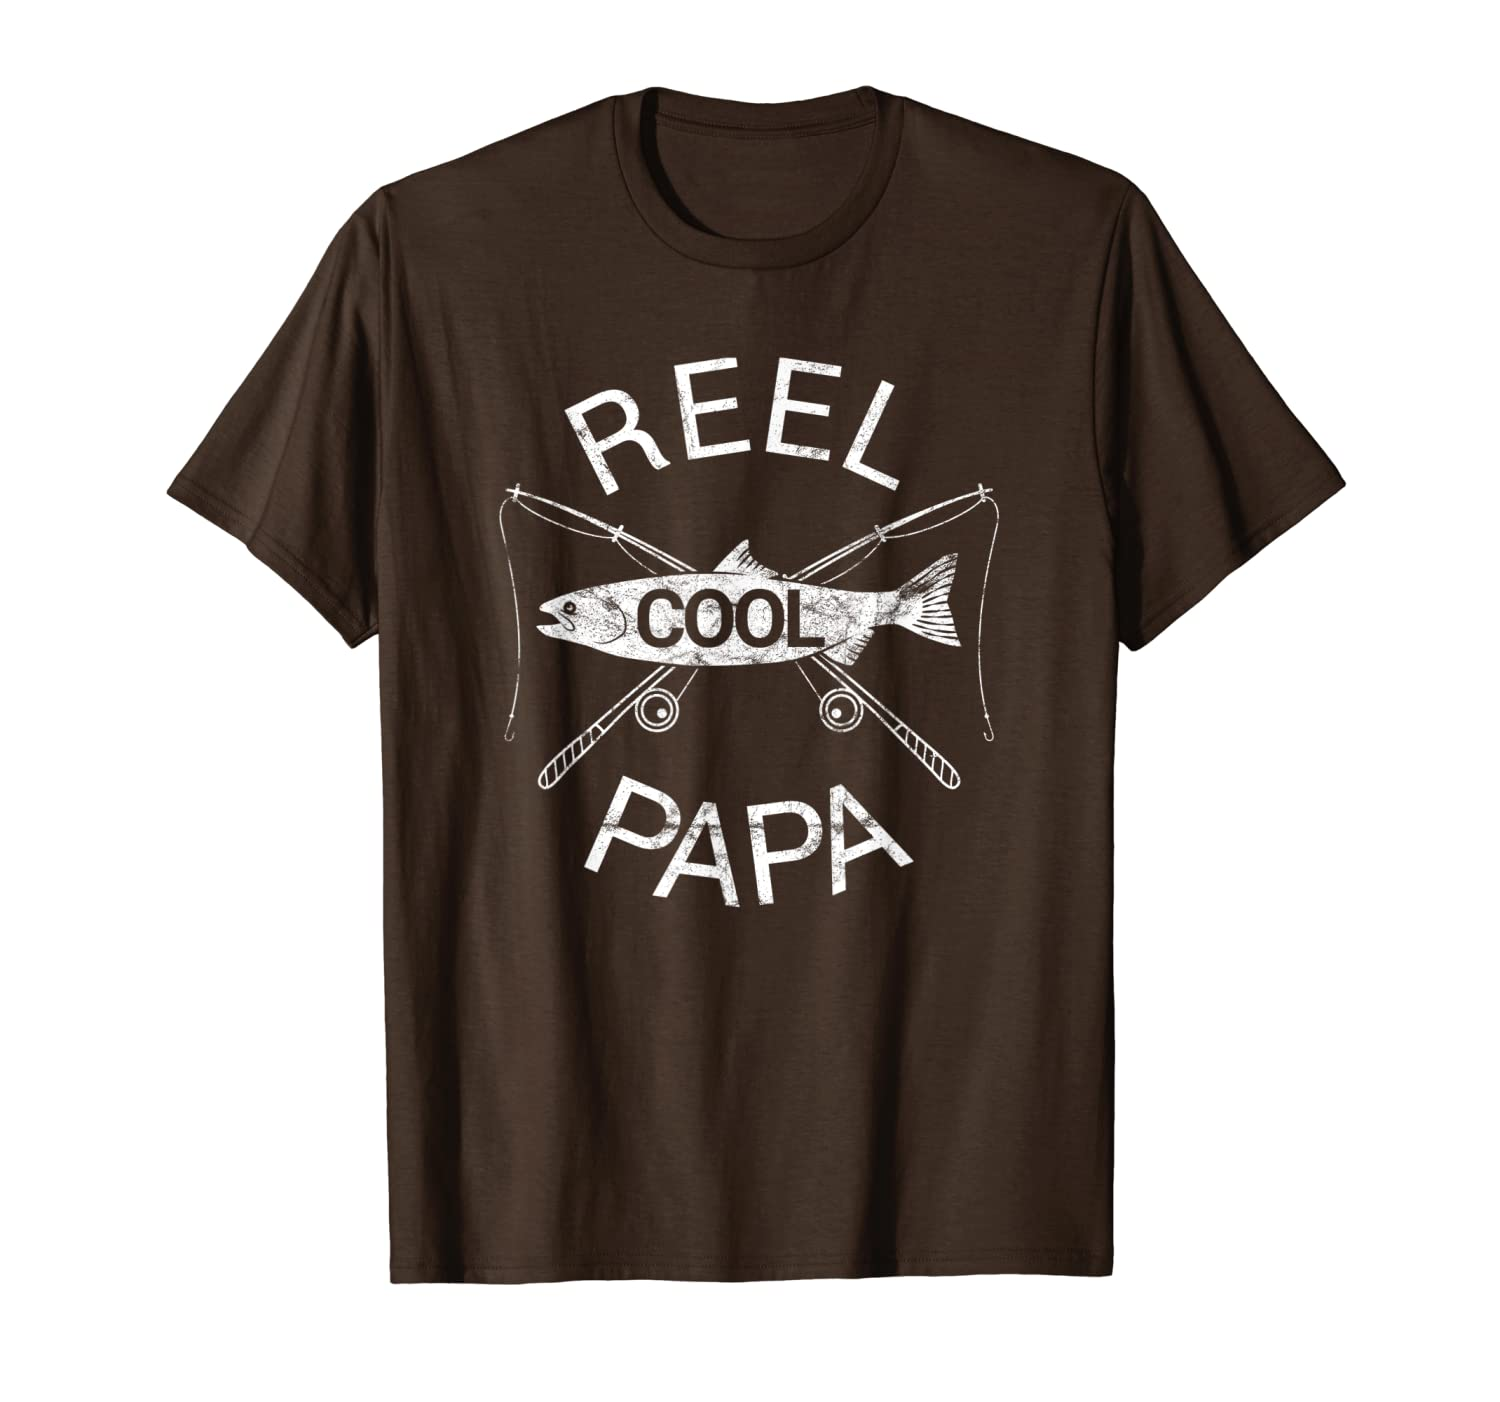 Fathers Day Gifts T-Shirt Fishing Reel Cool Papa Dad FUNNY Unisex Tshirt